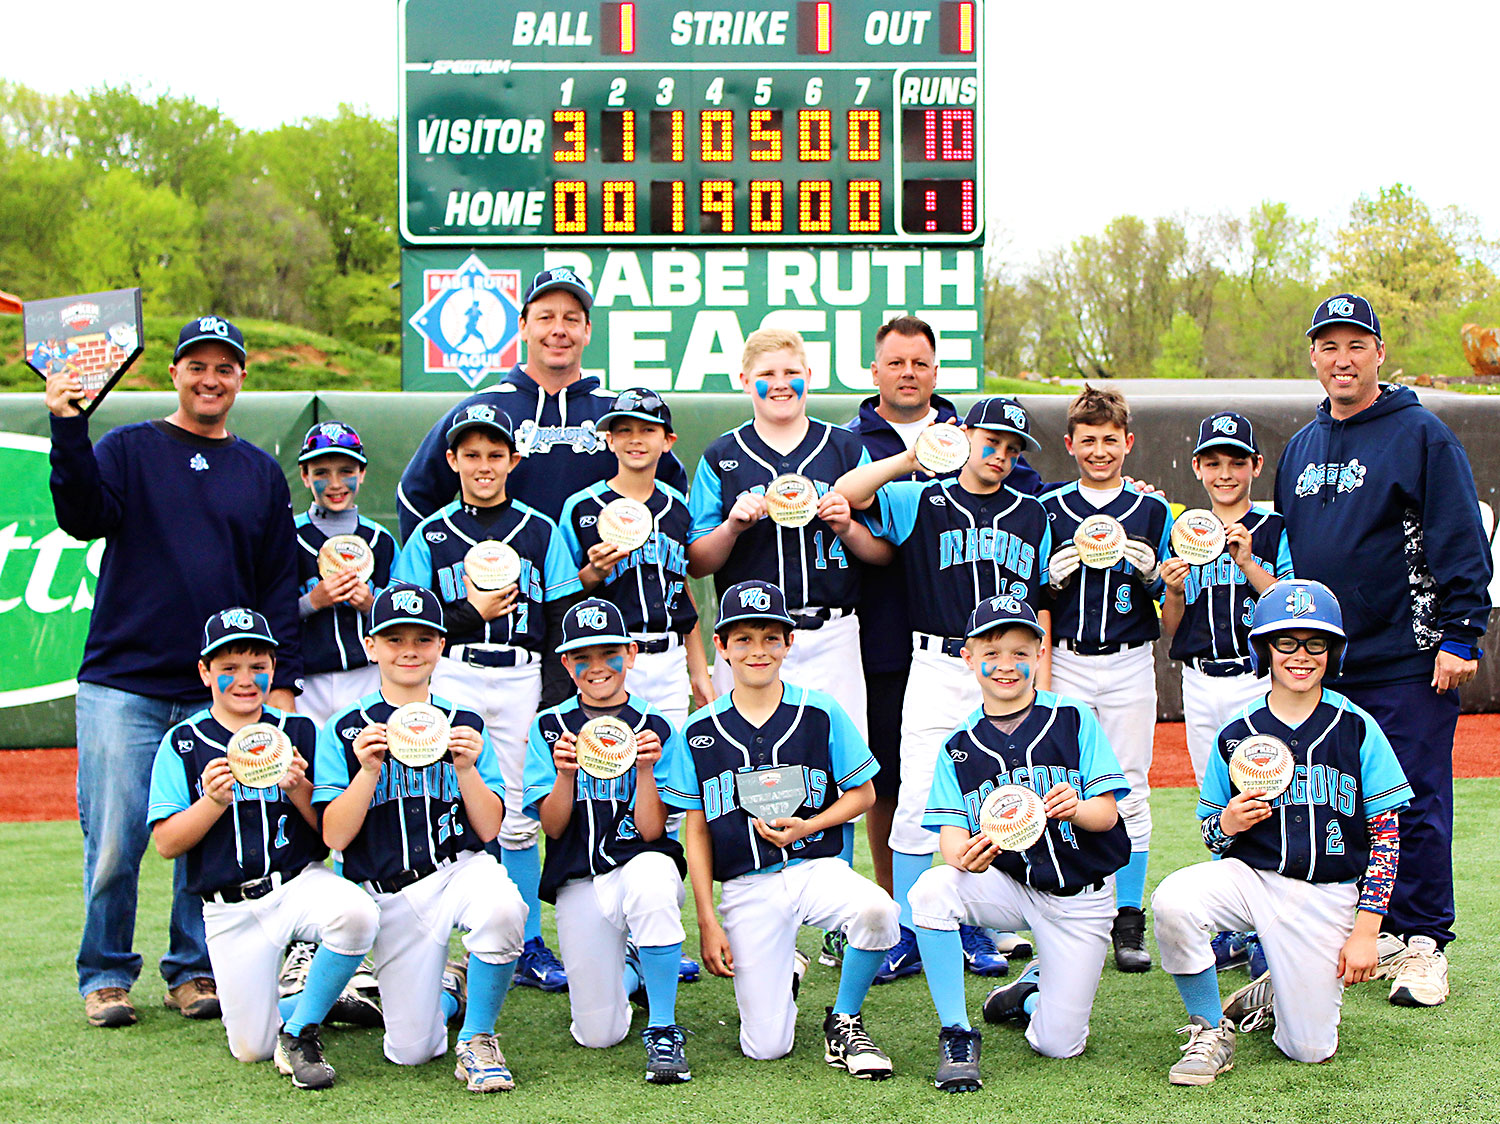 10u West Chester Dragons NL baseball teams wins The Free State Tournament 2017 at The Ripken Experience Aberdeen on April 23, 2017!